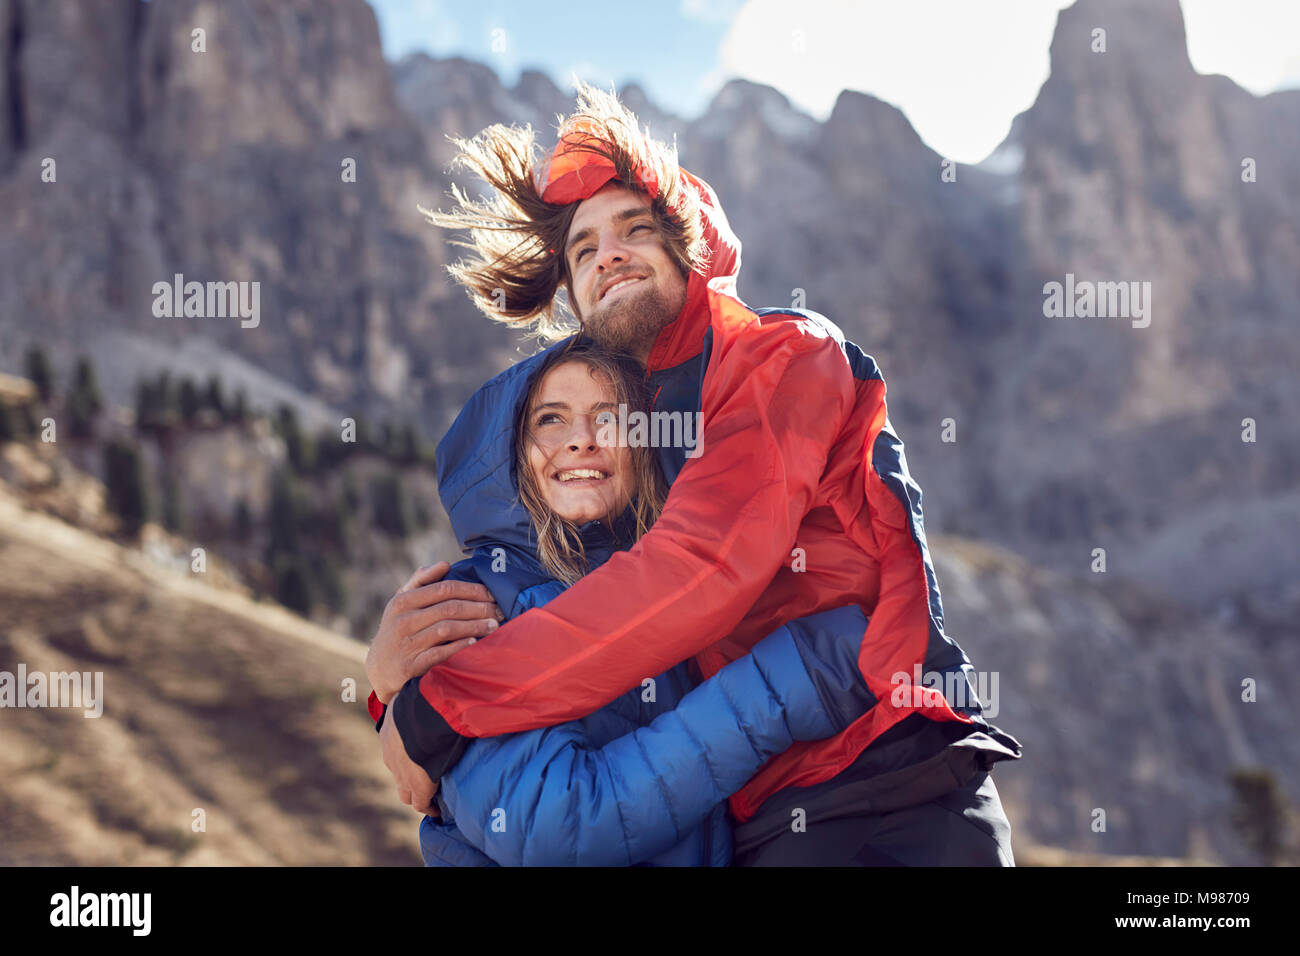 Happy young couple hugging in montagnes venteuses Banque D'Images